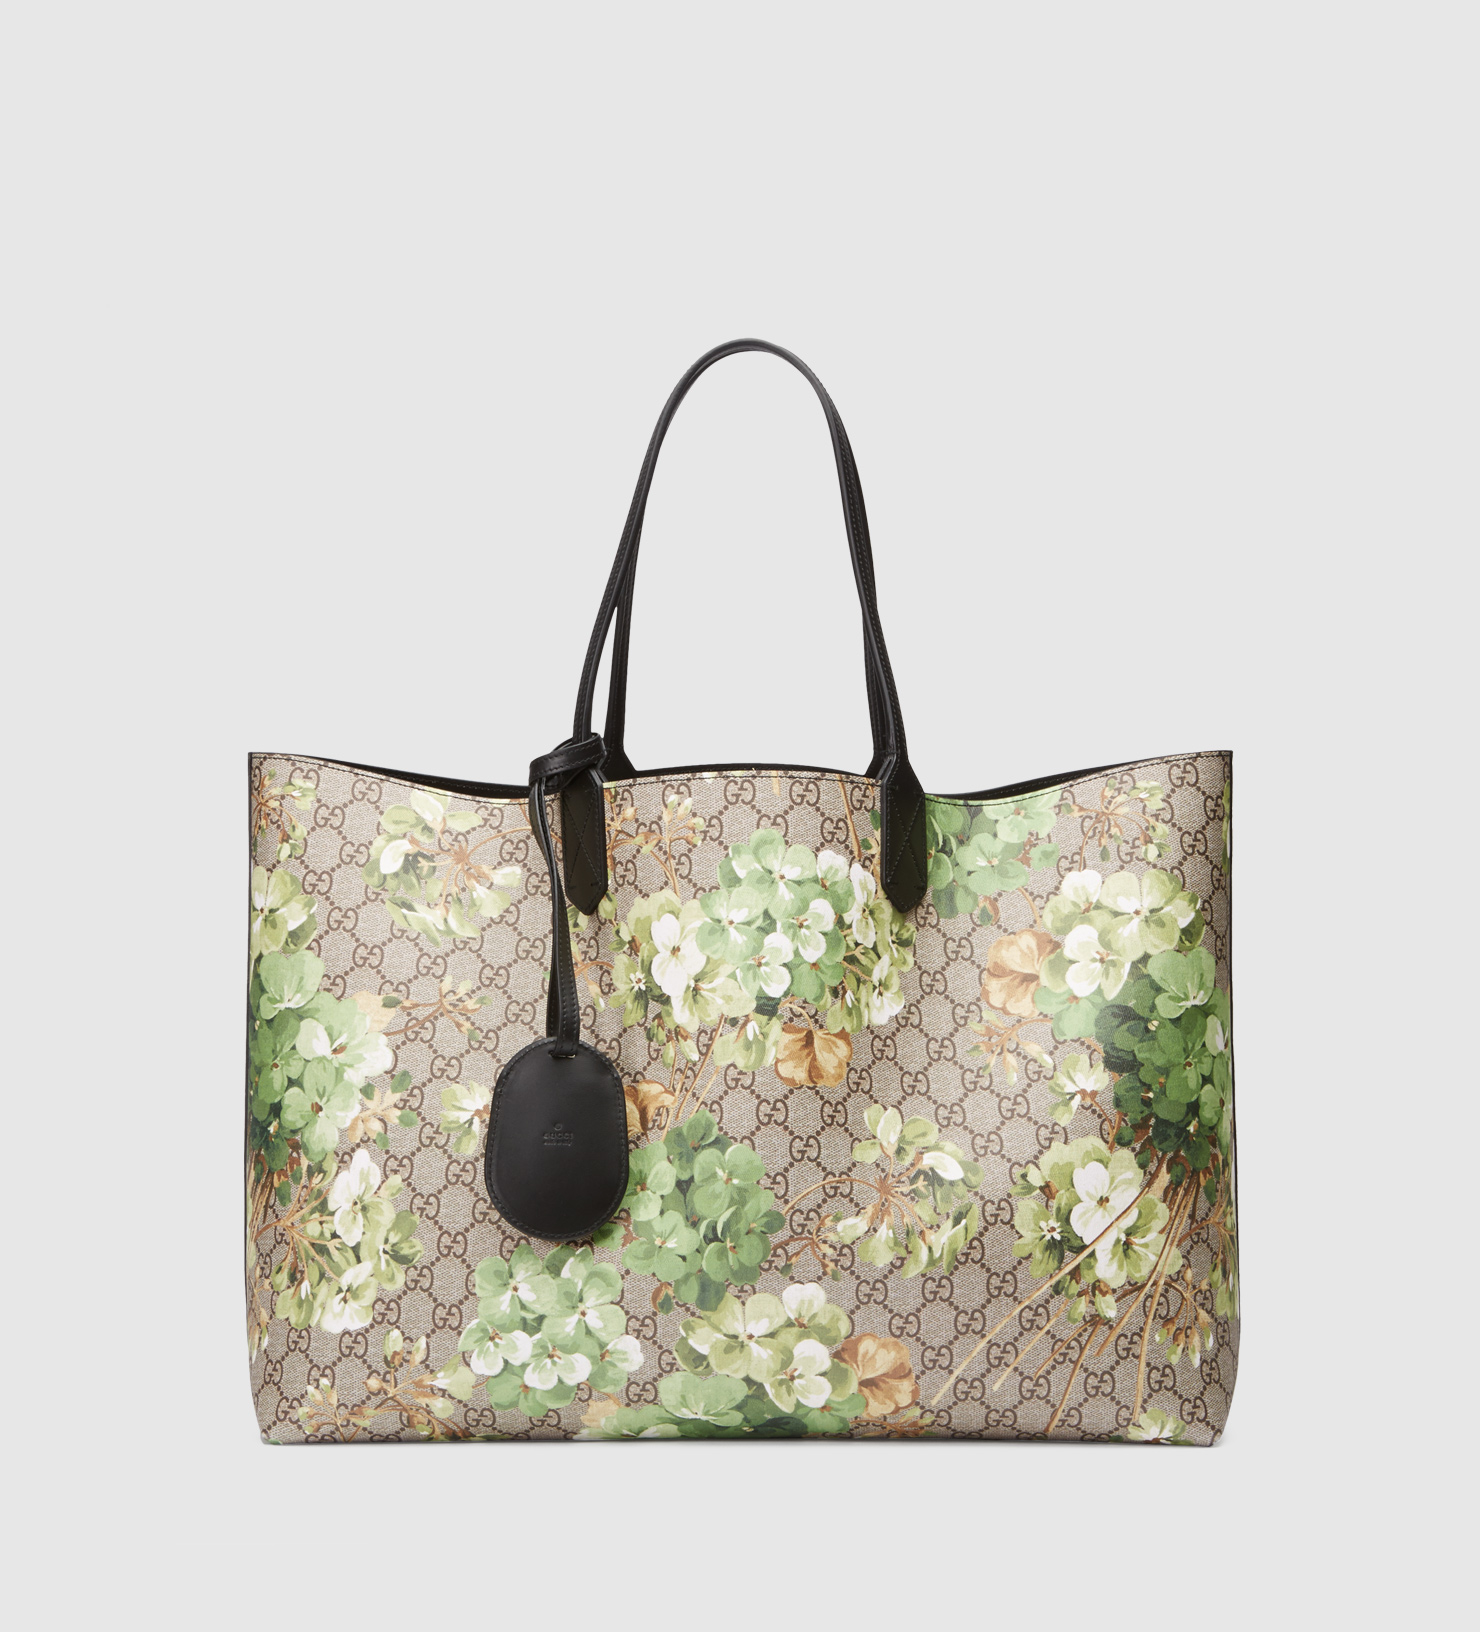 cc4635fac Gucci Reversible Gg Blooms Leather Tote in Green for Men - Lyst